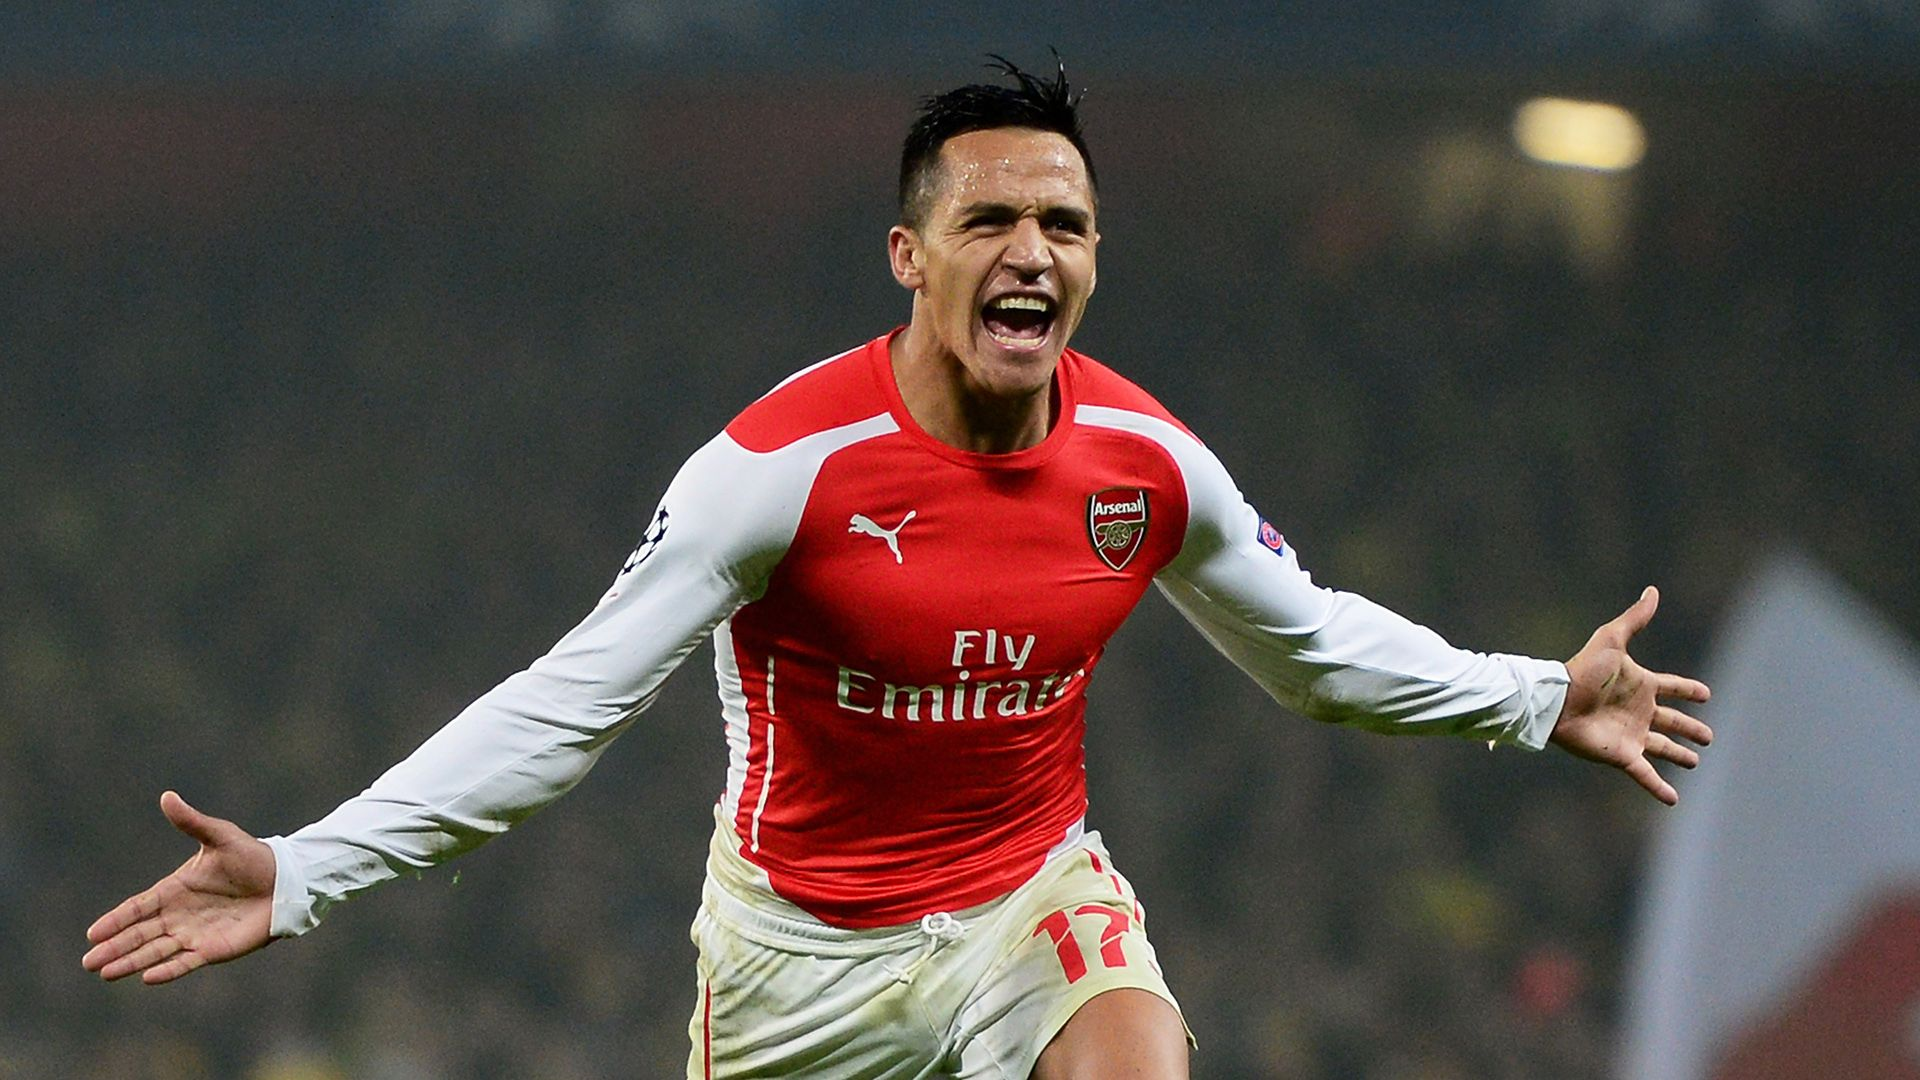 Get Latest Alexis Sanchez Manchester United Wallpapers Alexis Sanchez scores two fine goal to secure three very important points for Arsenal when West Bromwich Albion Thursday night visited the Emirates Stadium. See highlights from the confrontation below.